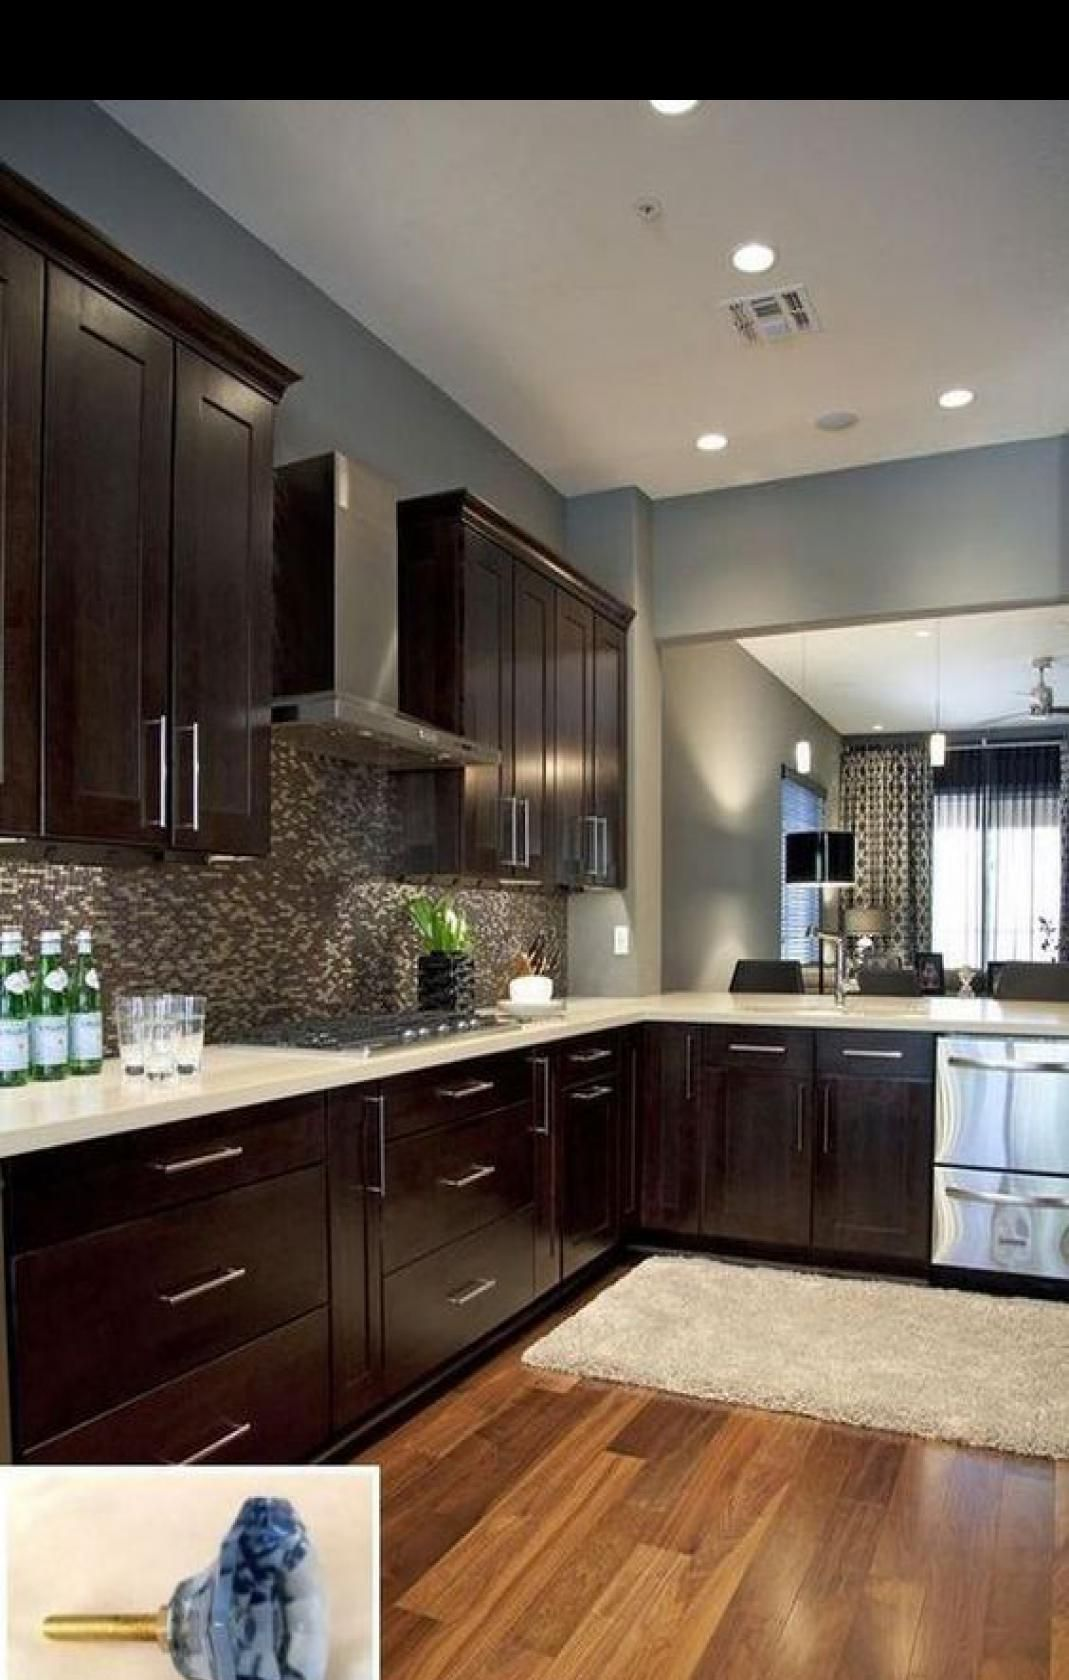 49 Cool Small Kitchen Design With Island Cool Design Island Kitchen Small Dark Brown Kitchen Cabinets Kitchen Cabinet Color Schemes Dark Brown Cabinets